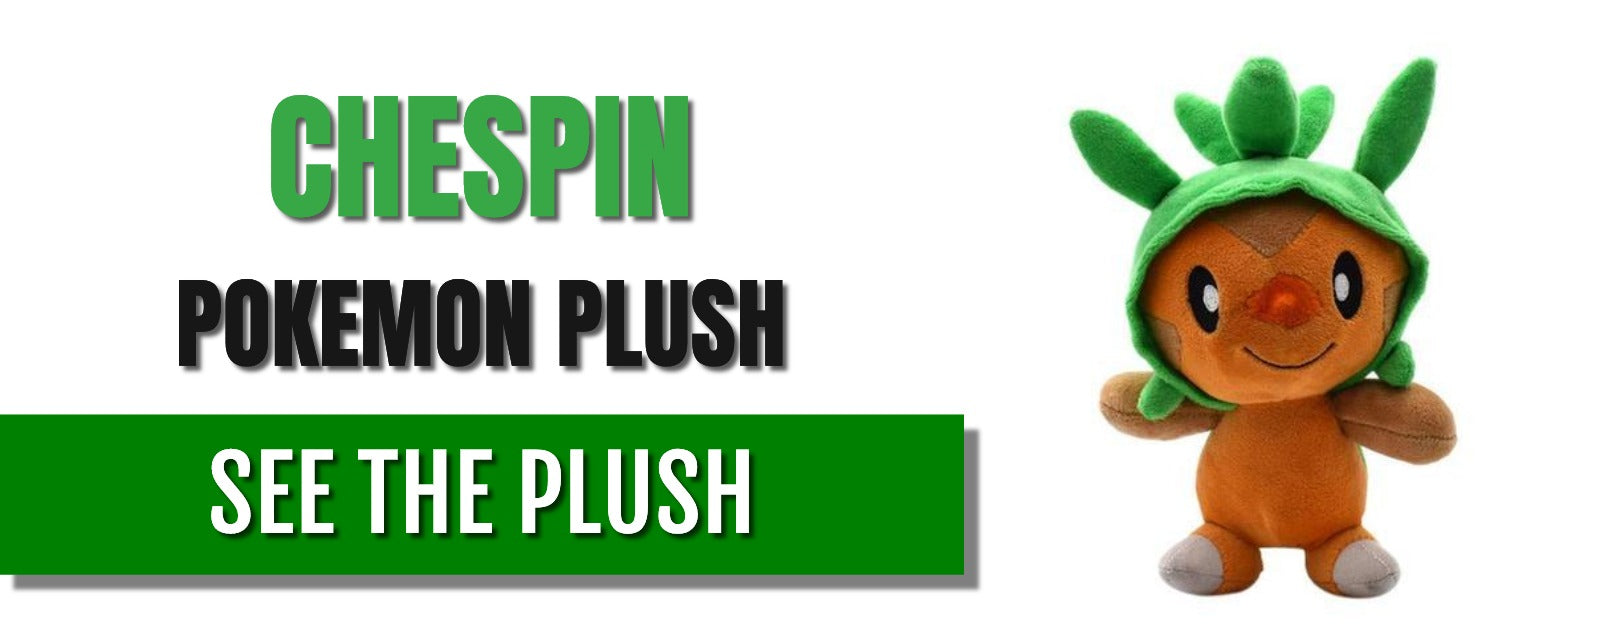 chespin pokemon plush